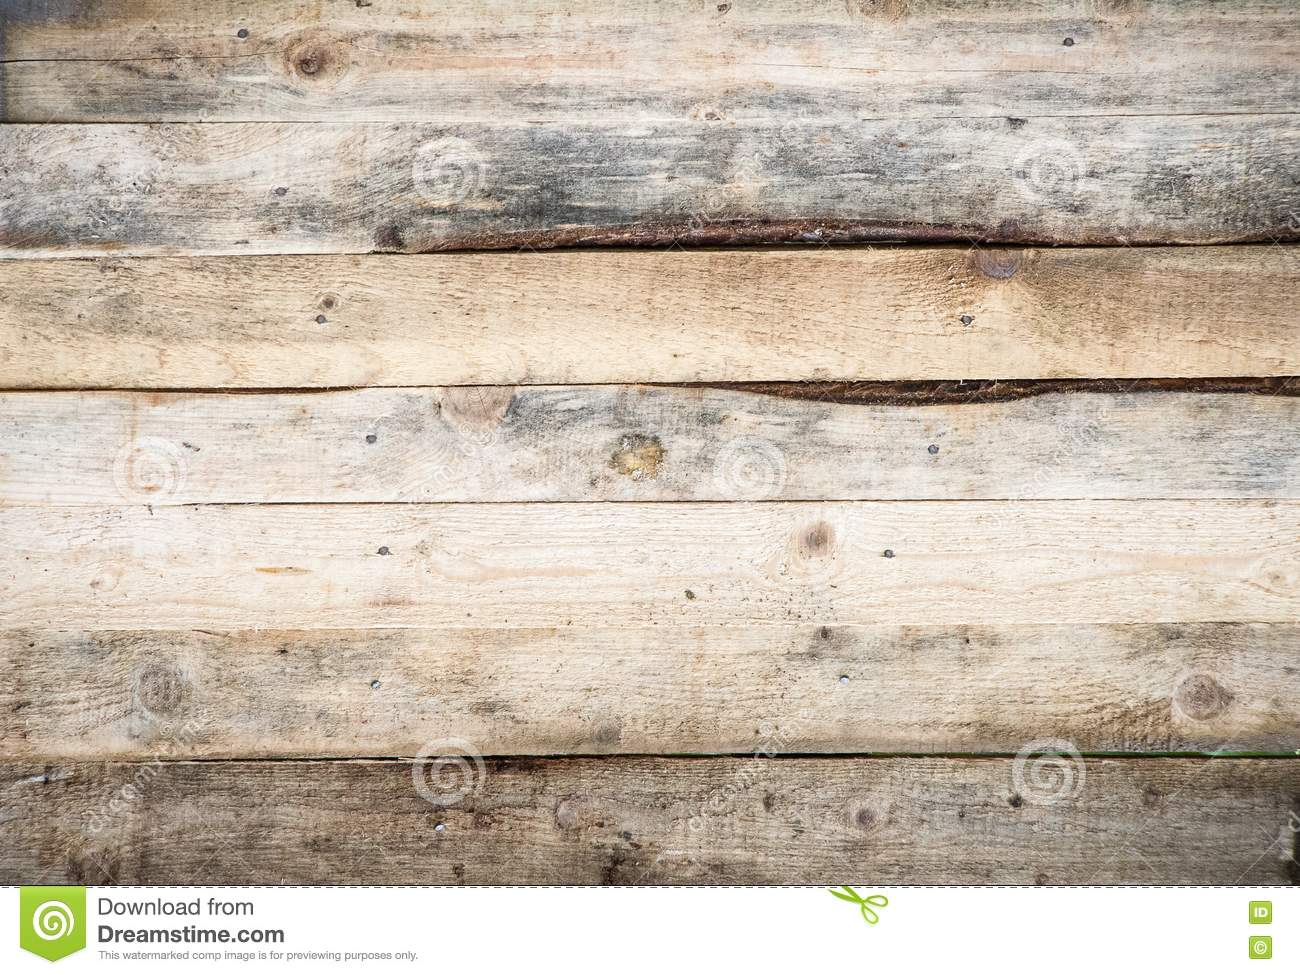 1 634 Blank Rustic Wood Sign Tree Photos Free Royalty Free Stock Photos From Dreamstime